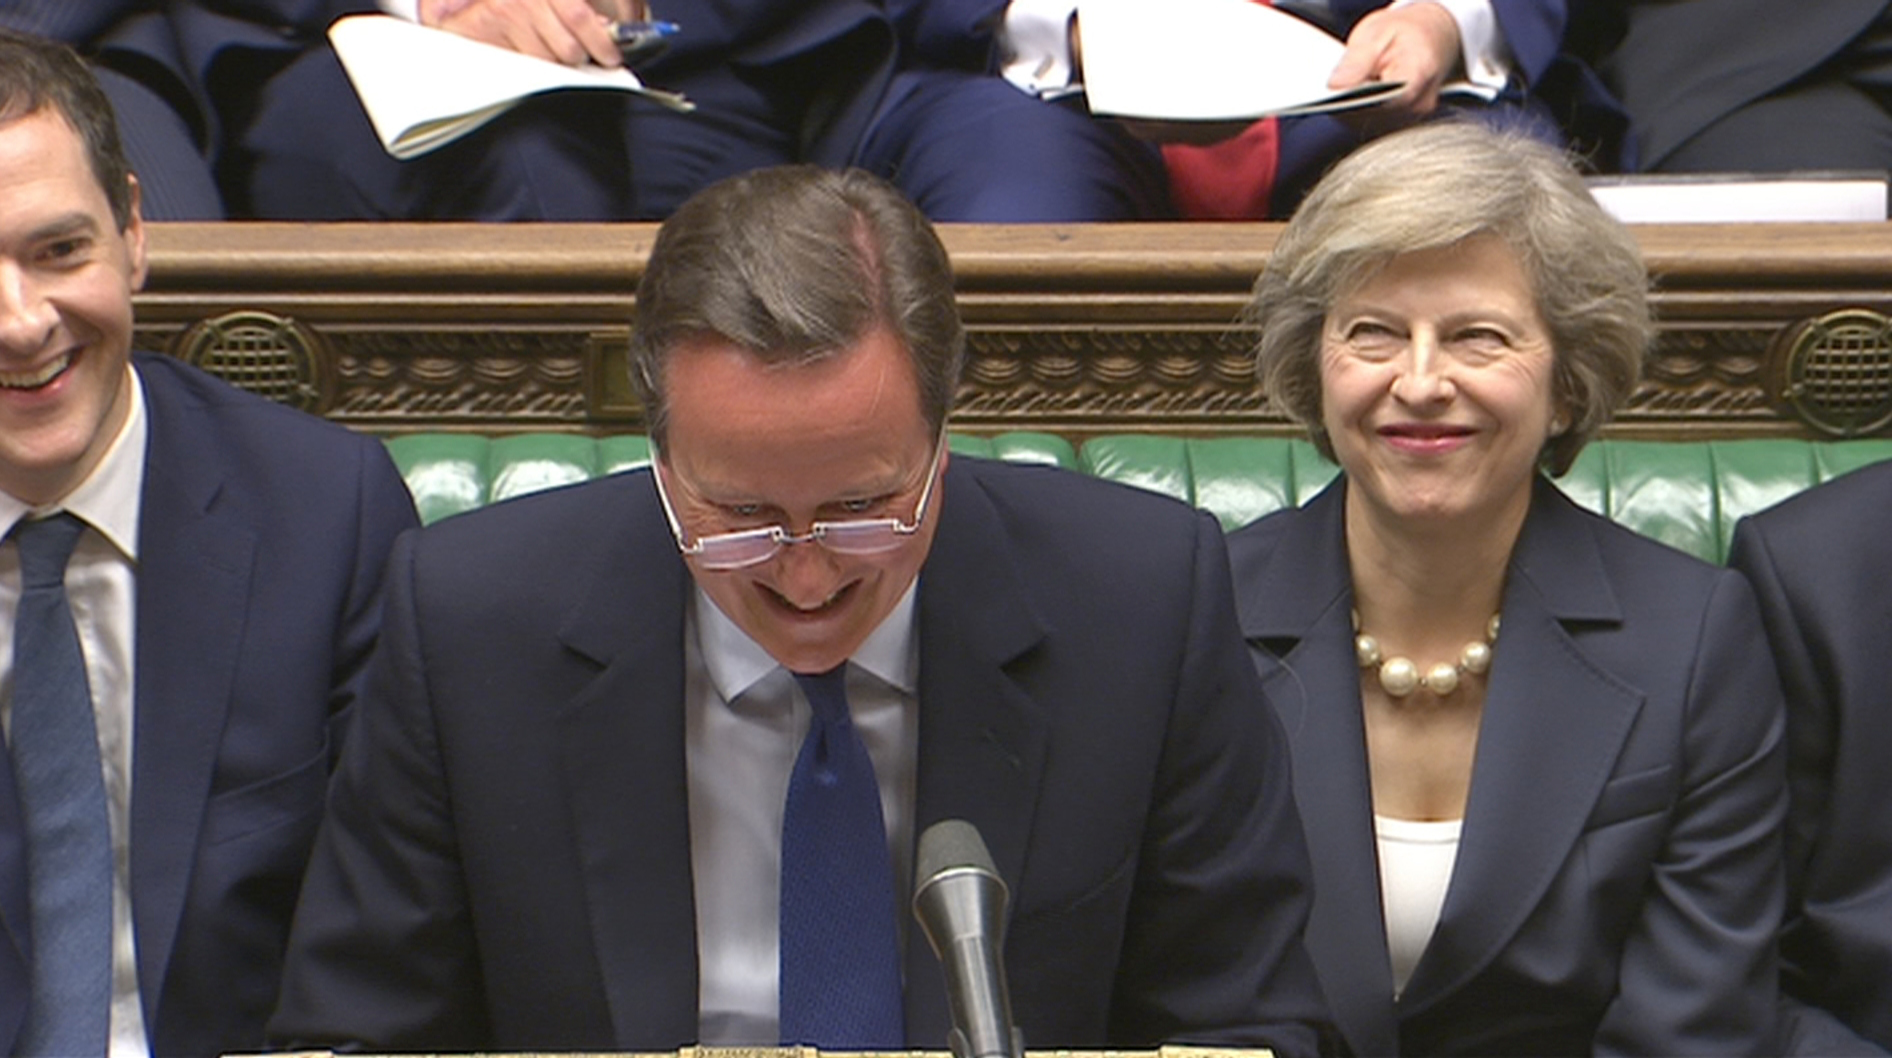 Britain's outgoing Prime Minister, David Cameron (C), incoming prime minister Theresa May (R) and Chancellor of the Exchequer George Osborne, laugh during Prime Minister's Questions in the House of Commons, in central London, Britain on July 13, 2016...